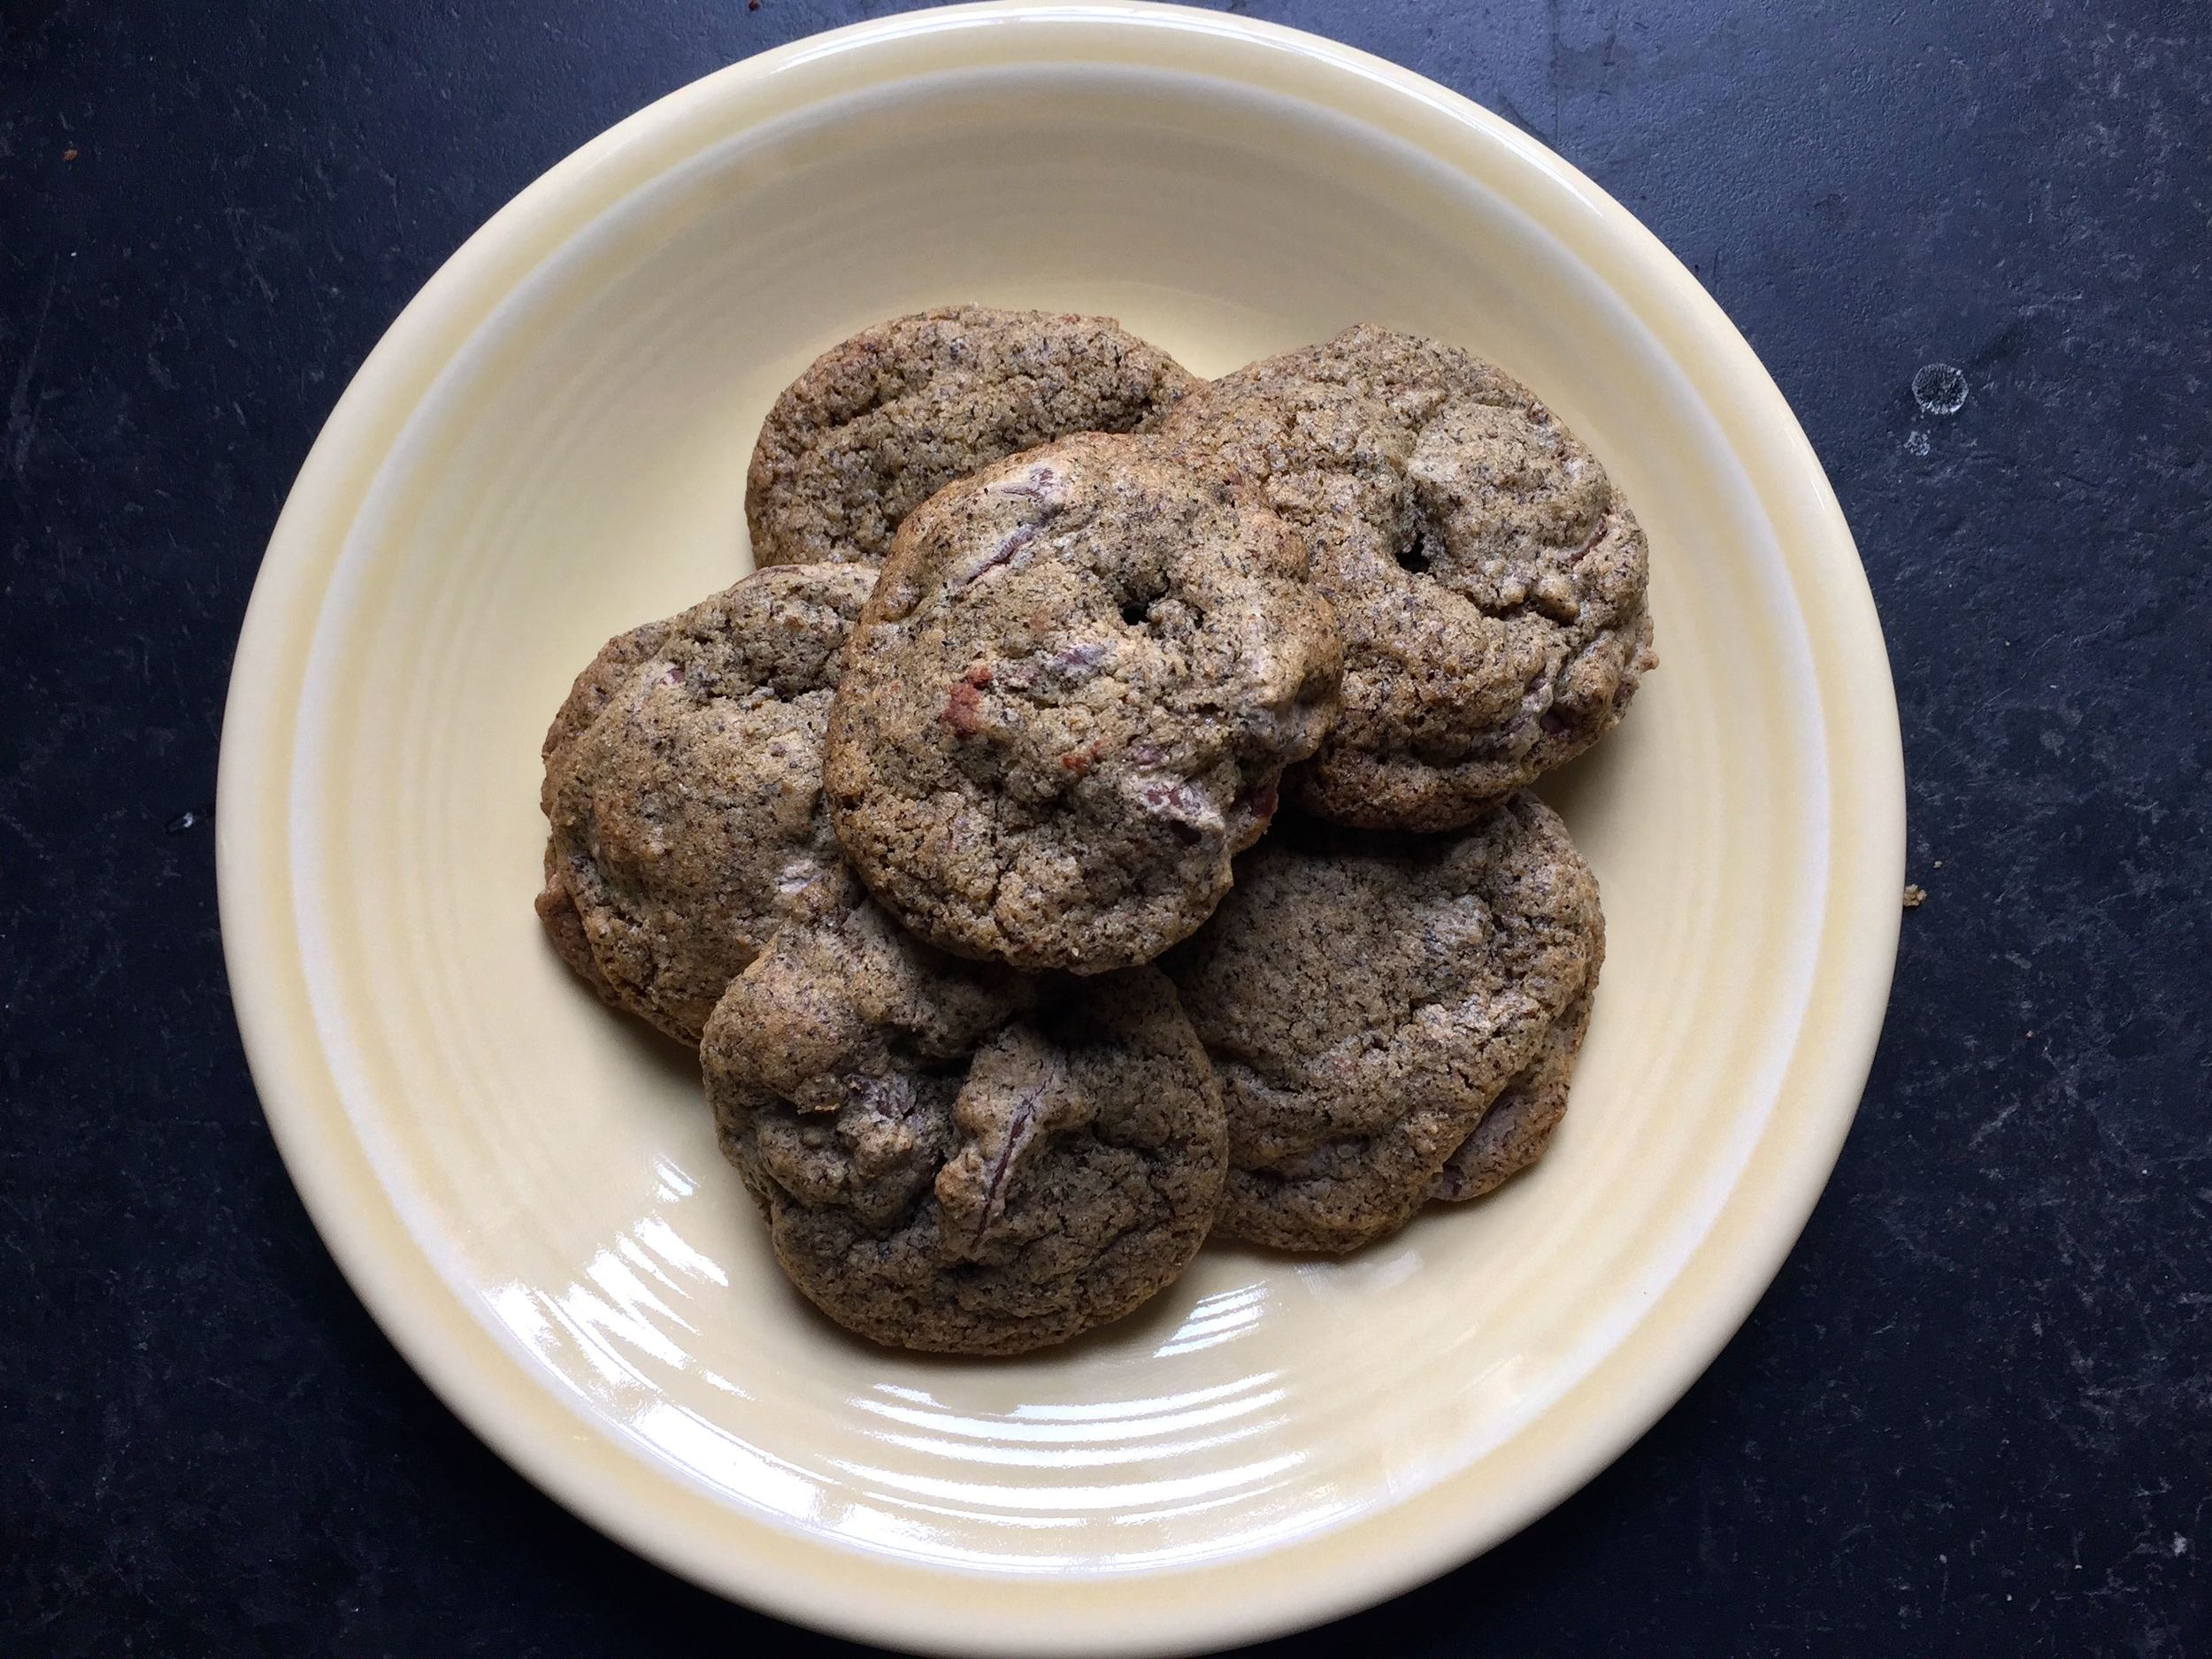 The final product! Dark and dreamy gluten free chocolate chips, with buckwheat, sorghum and oat flours.